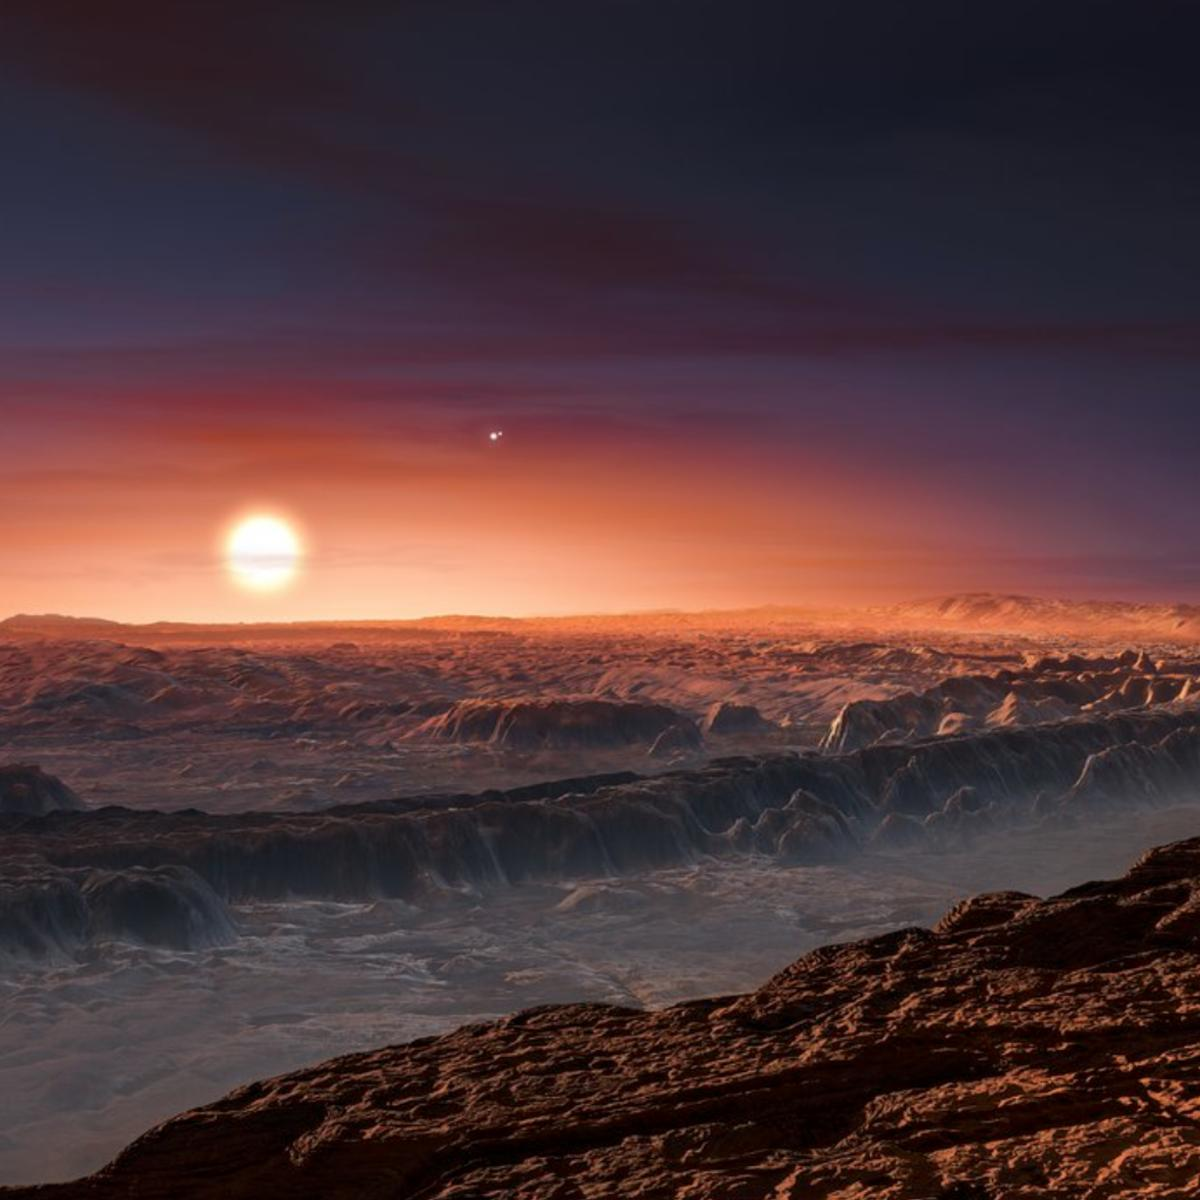 The closest to the Earth exoplanet may be habitable